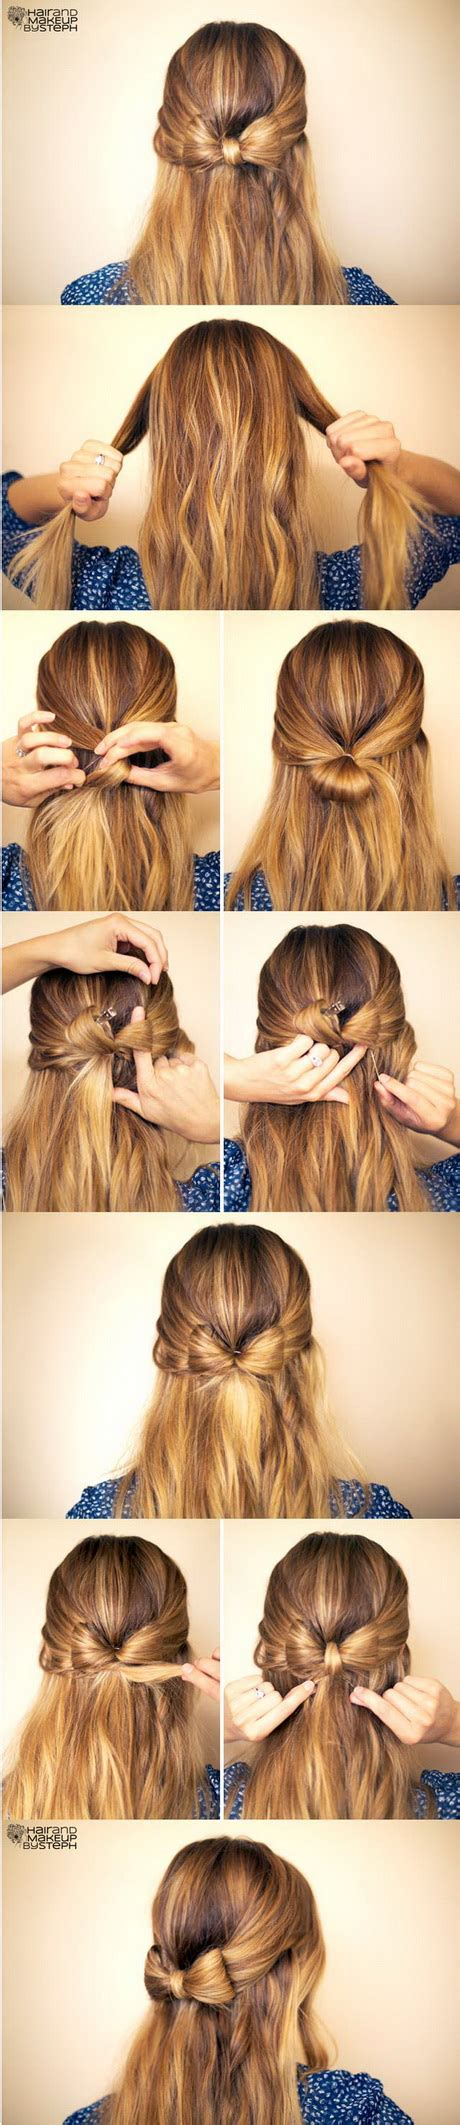 step by step haircuts for women easy step by step hairstyles for long hair